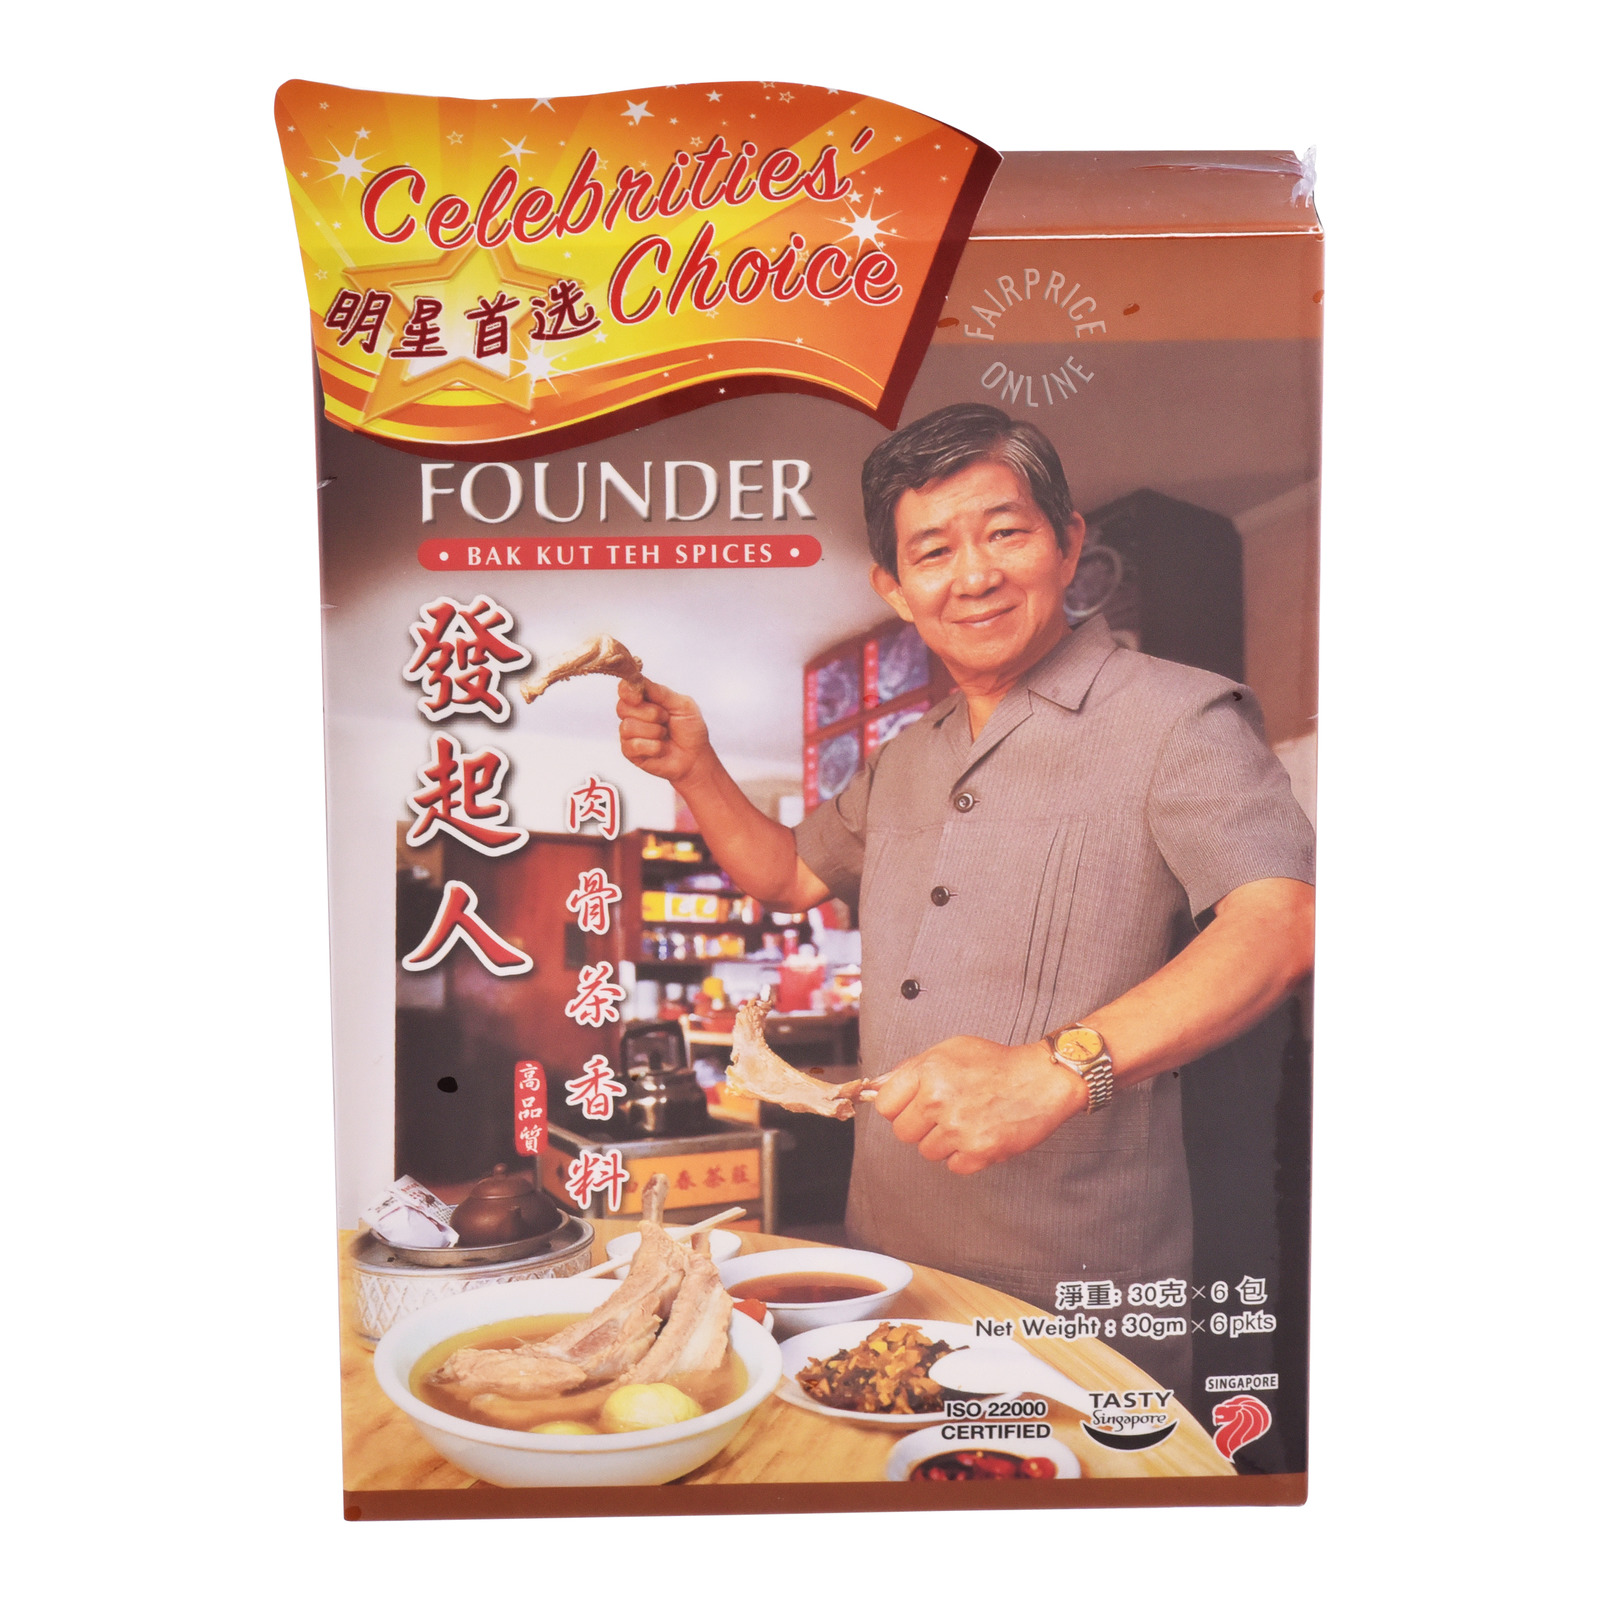 Founder Bak Kut Teh Ready Mix Spices